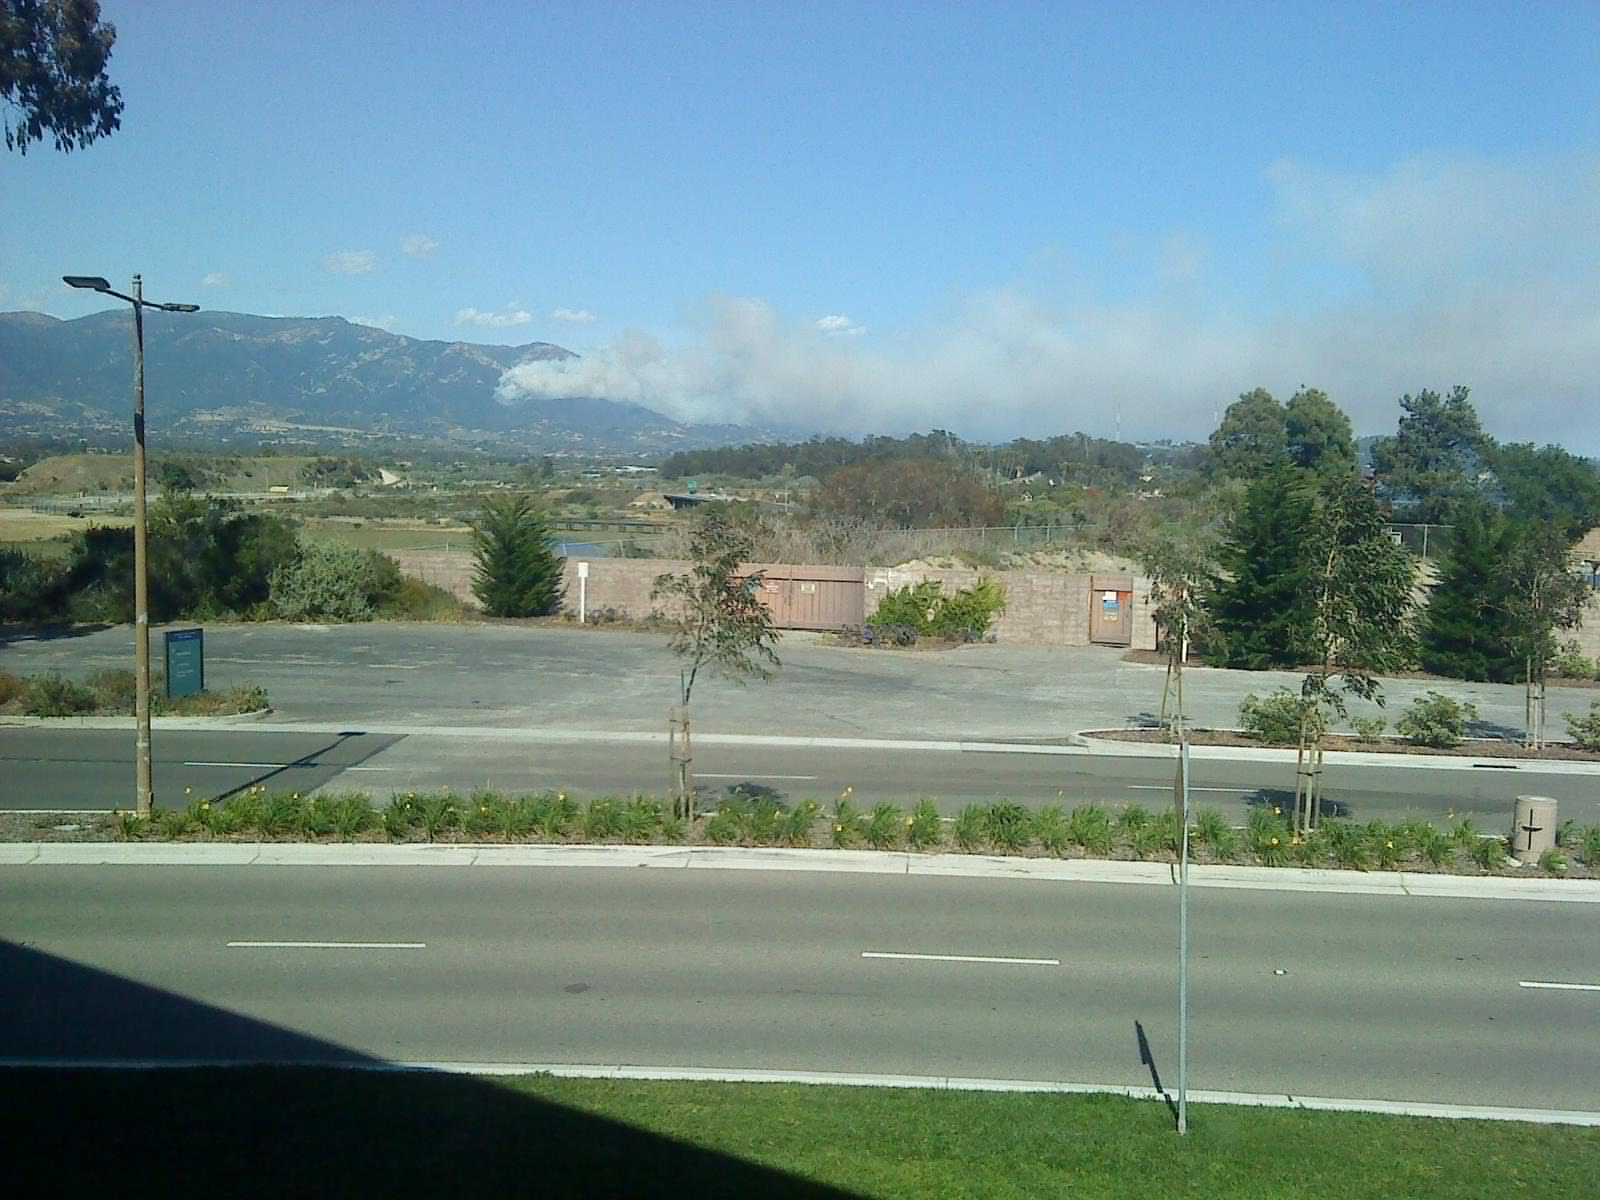 Another fire in the Santa Barbara hills!